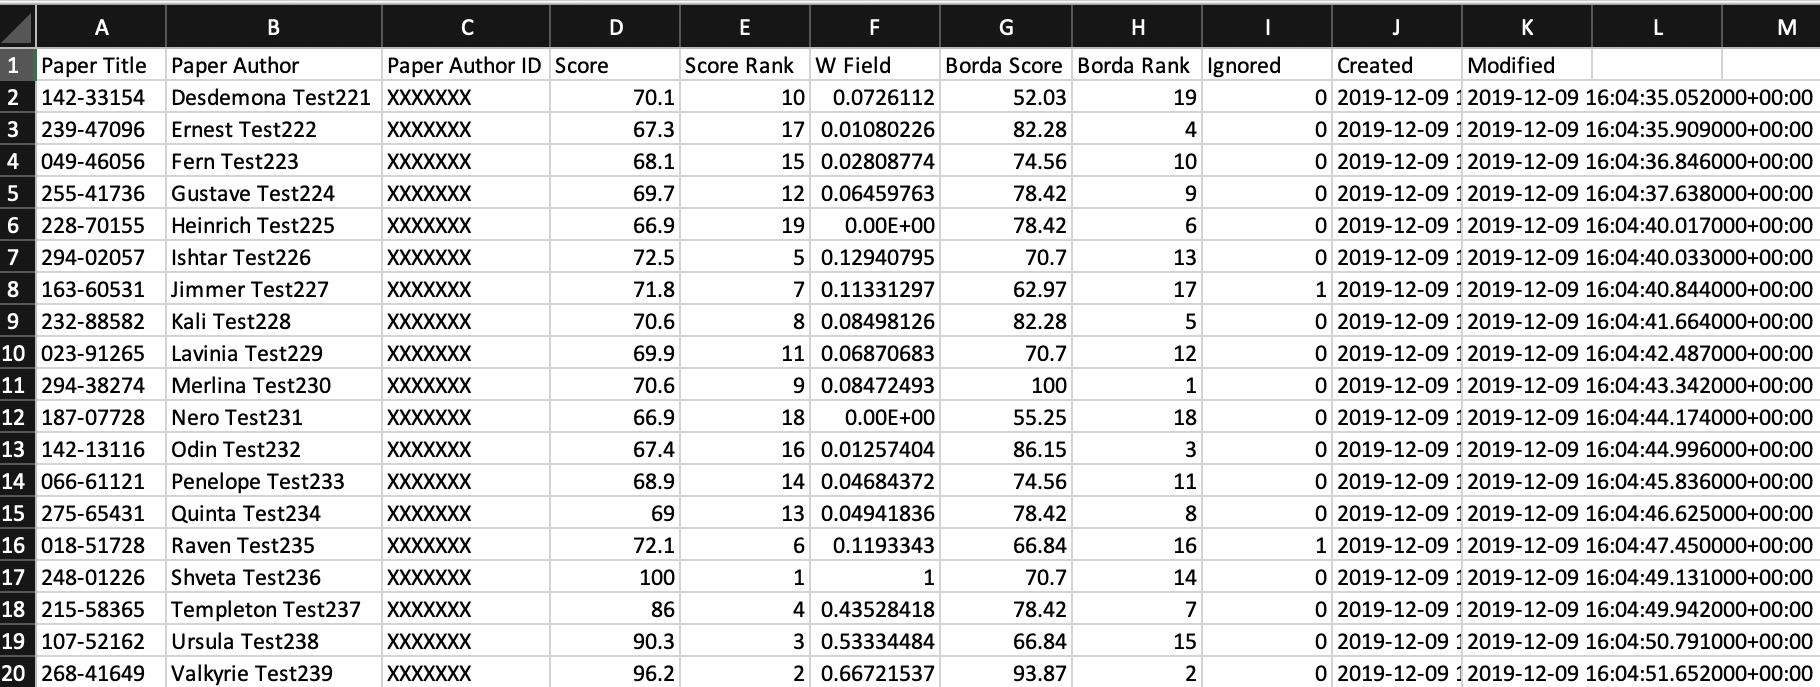 A spreadsheet with final results data.